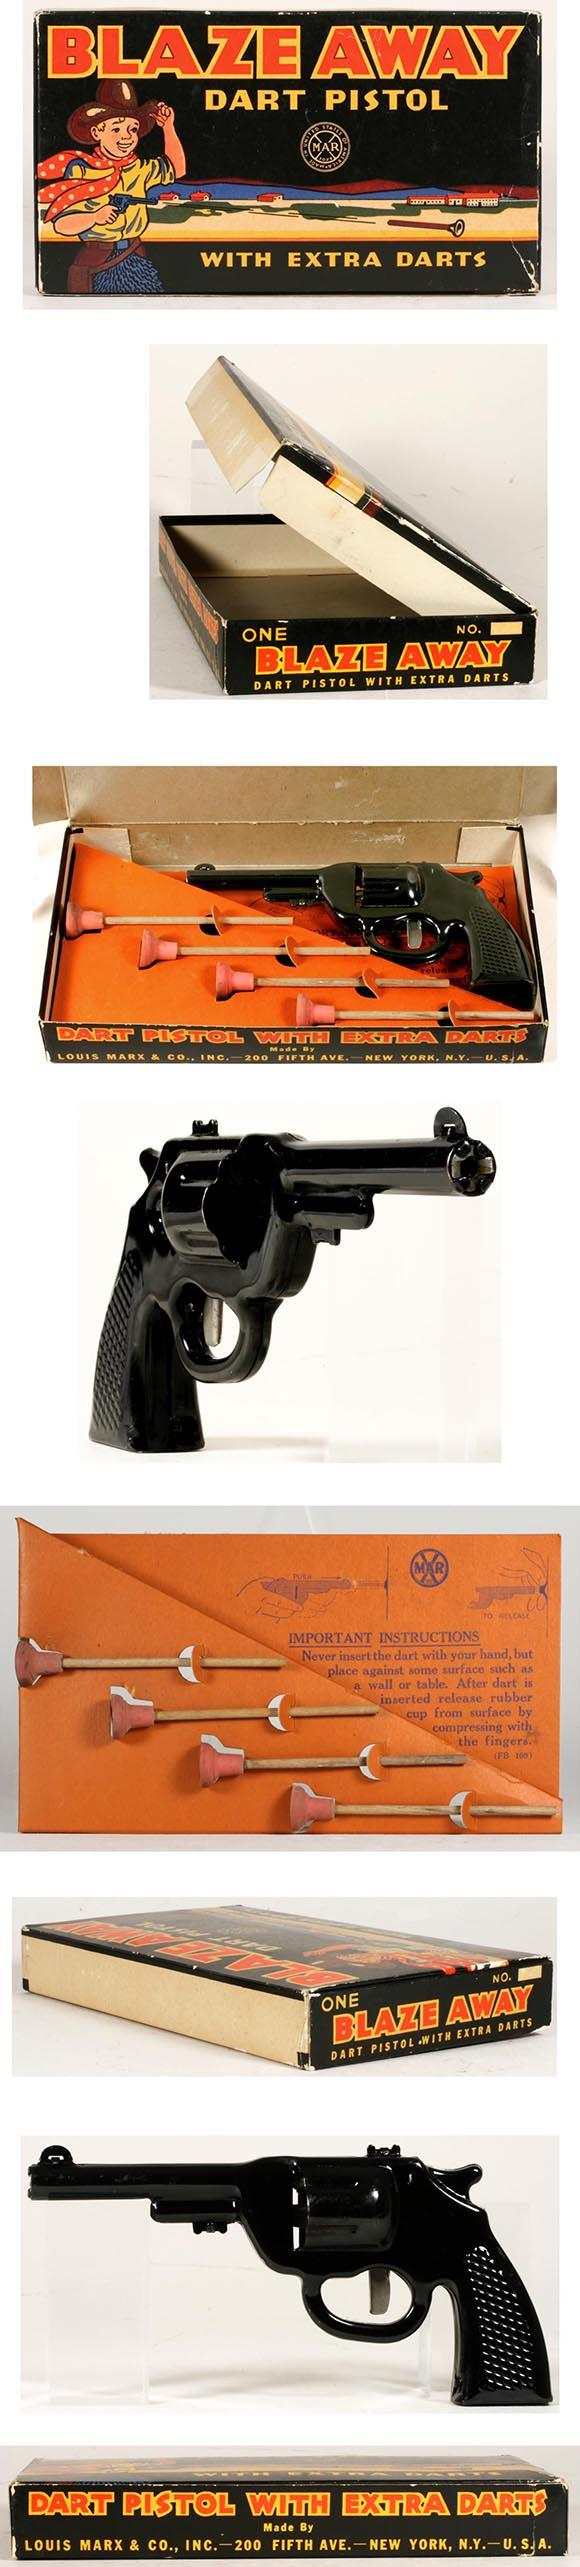 c.1949 Marx, Blaze Away Dart Pistol in Original Box